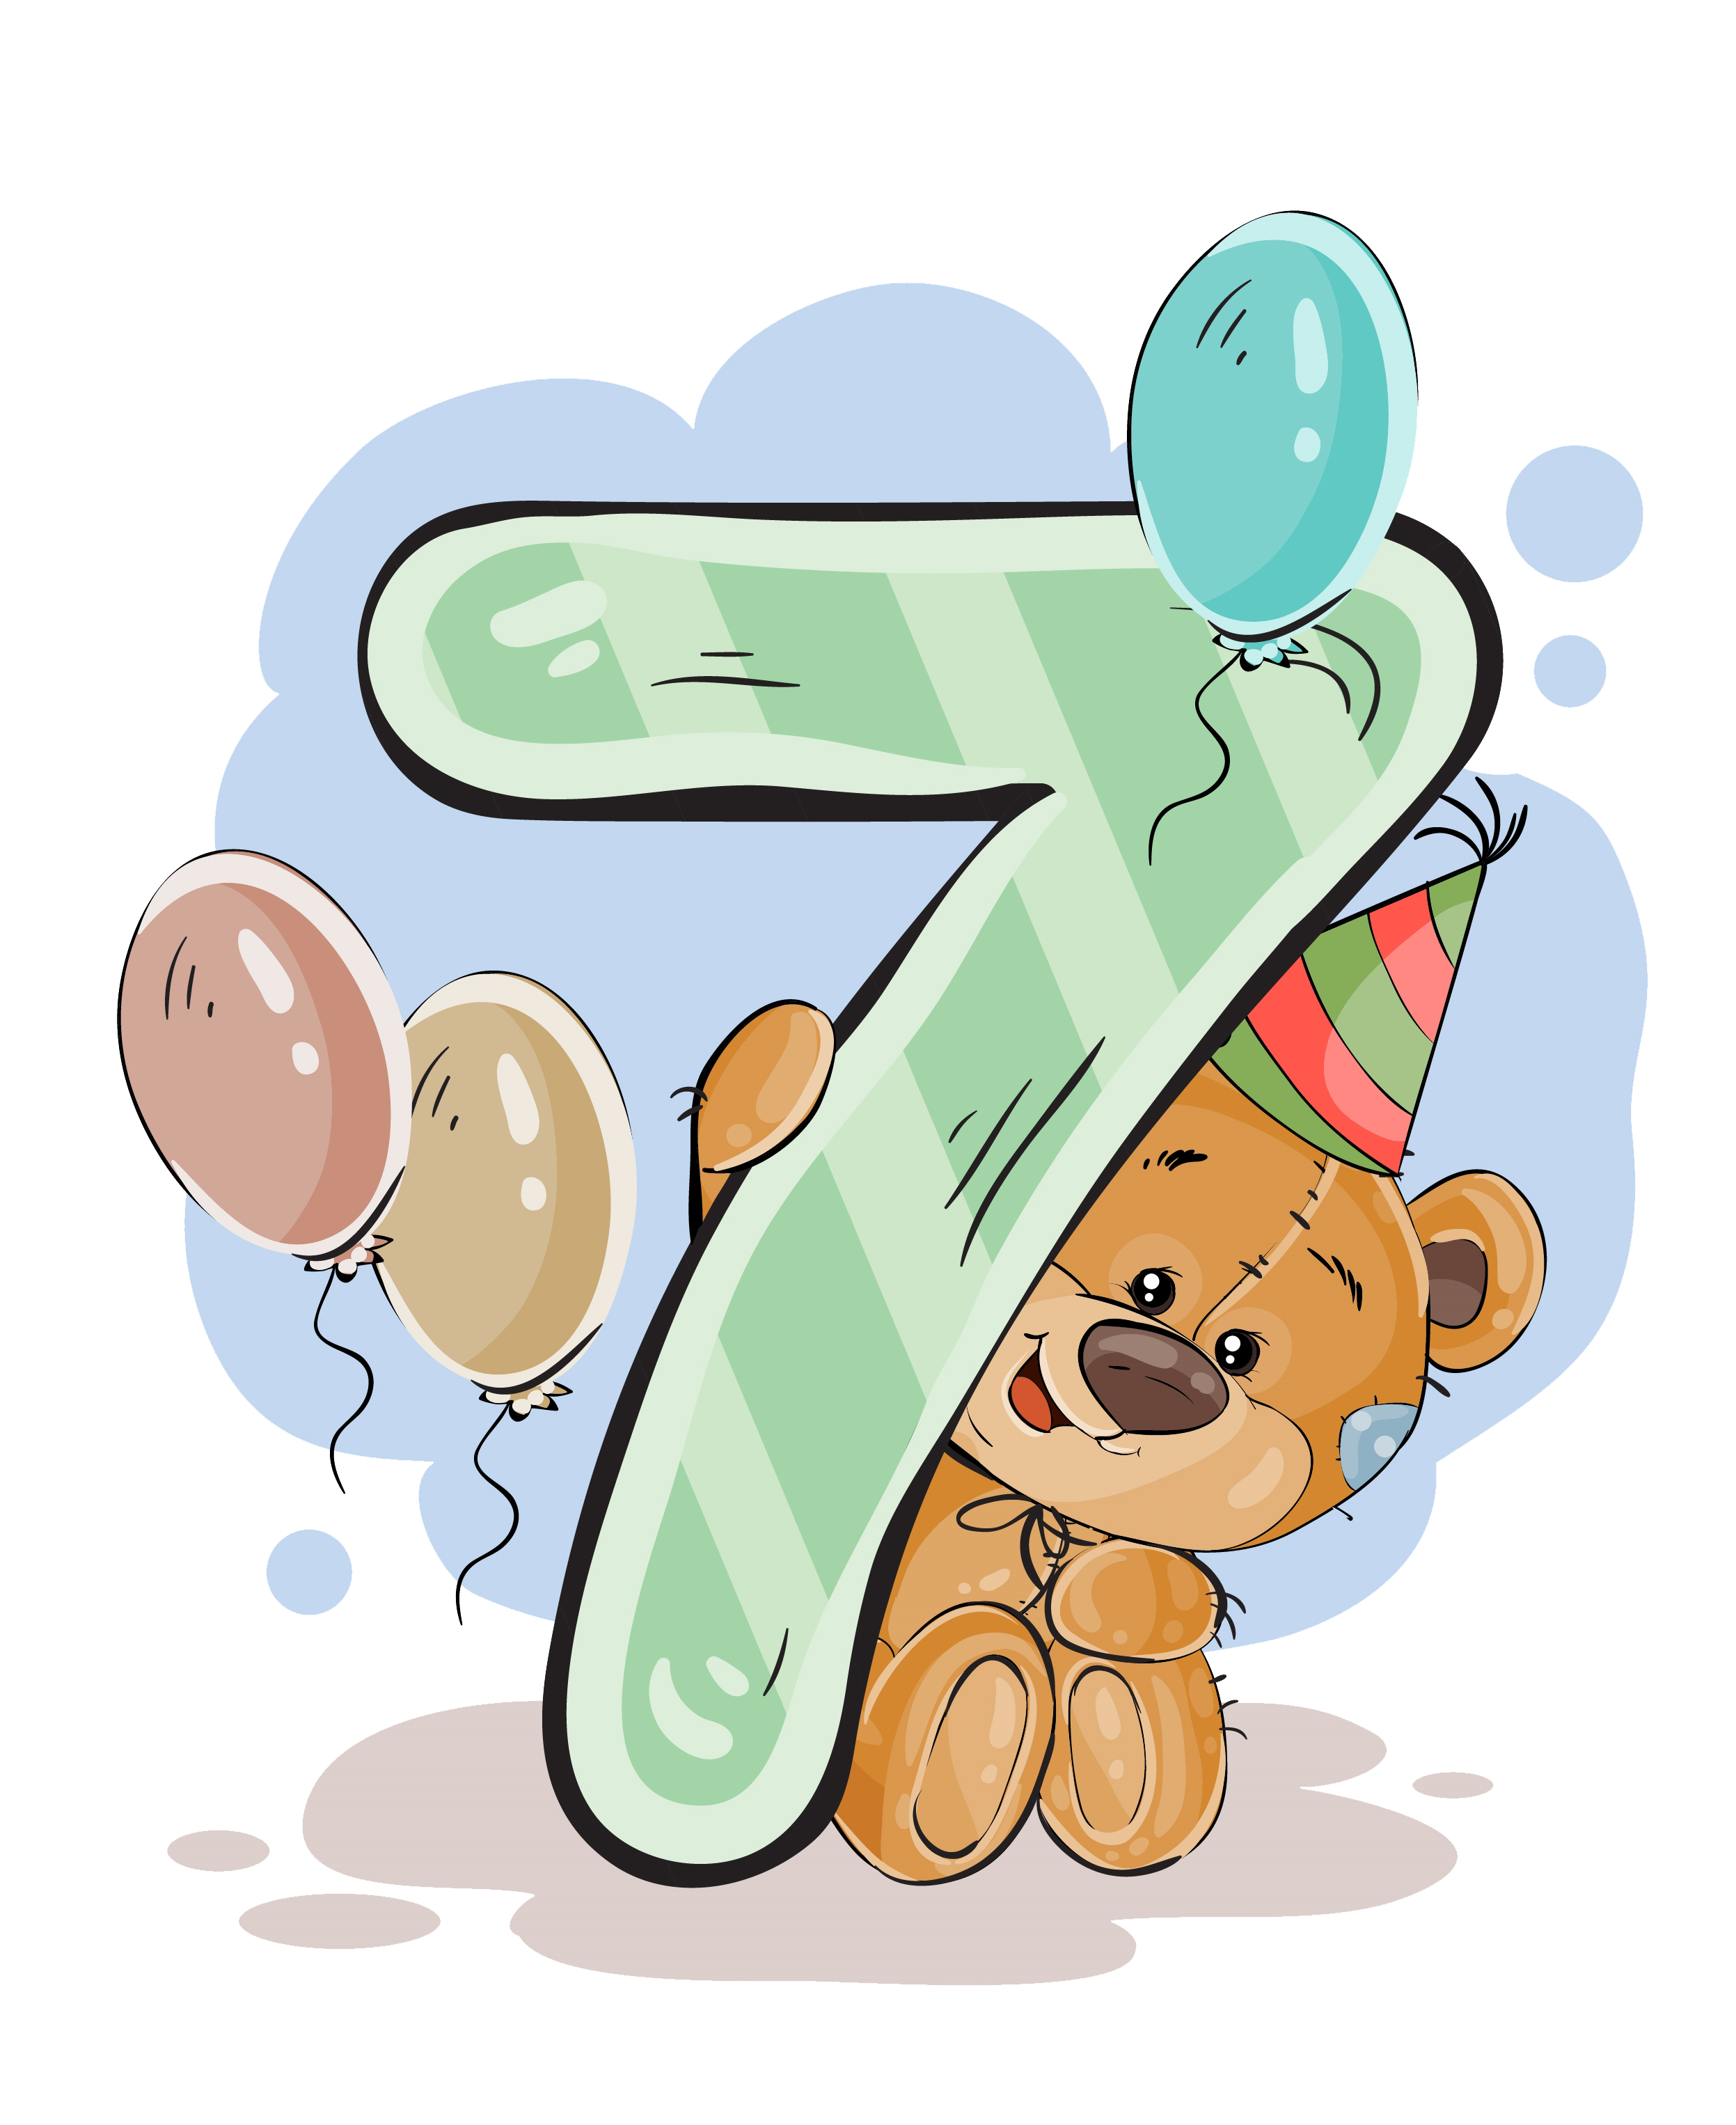 Scrapbook clipart happy birthday. Pin by wizard on